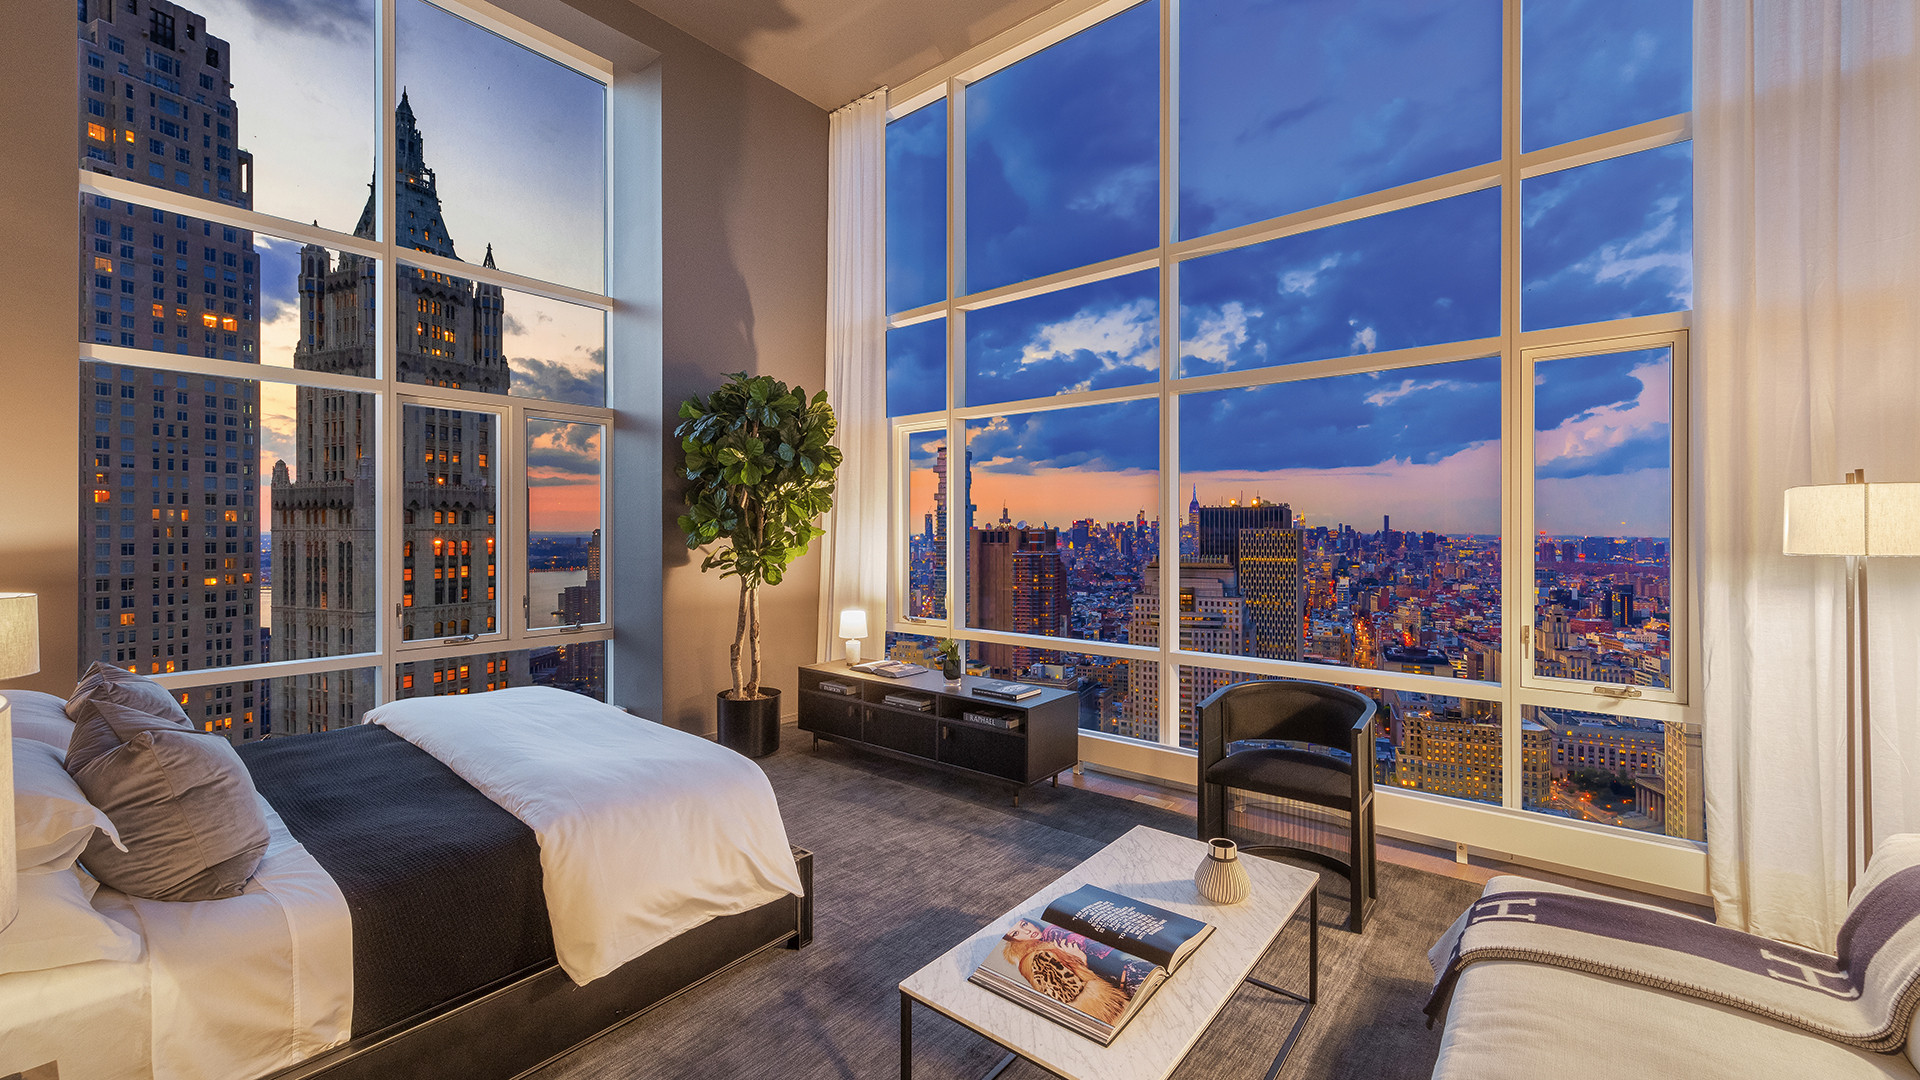 A bedroom at The Beekman Hotel and Residences